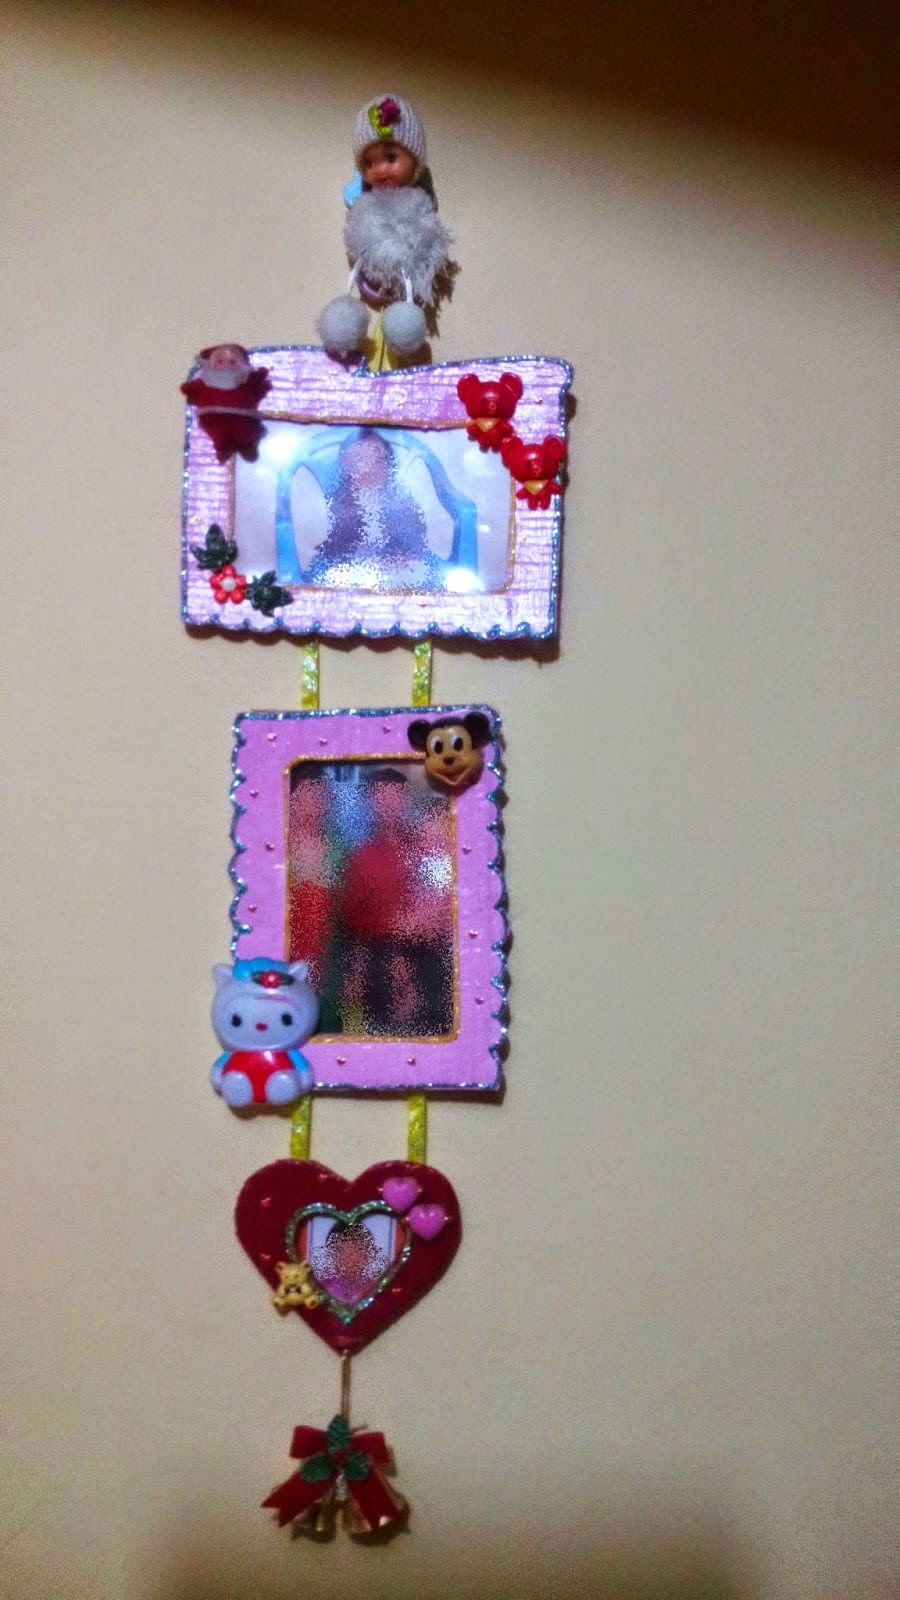 http://nithyajeyaram.blogspot.in/2014/12/handmade-photo-frame-3-in-1.html